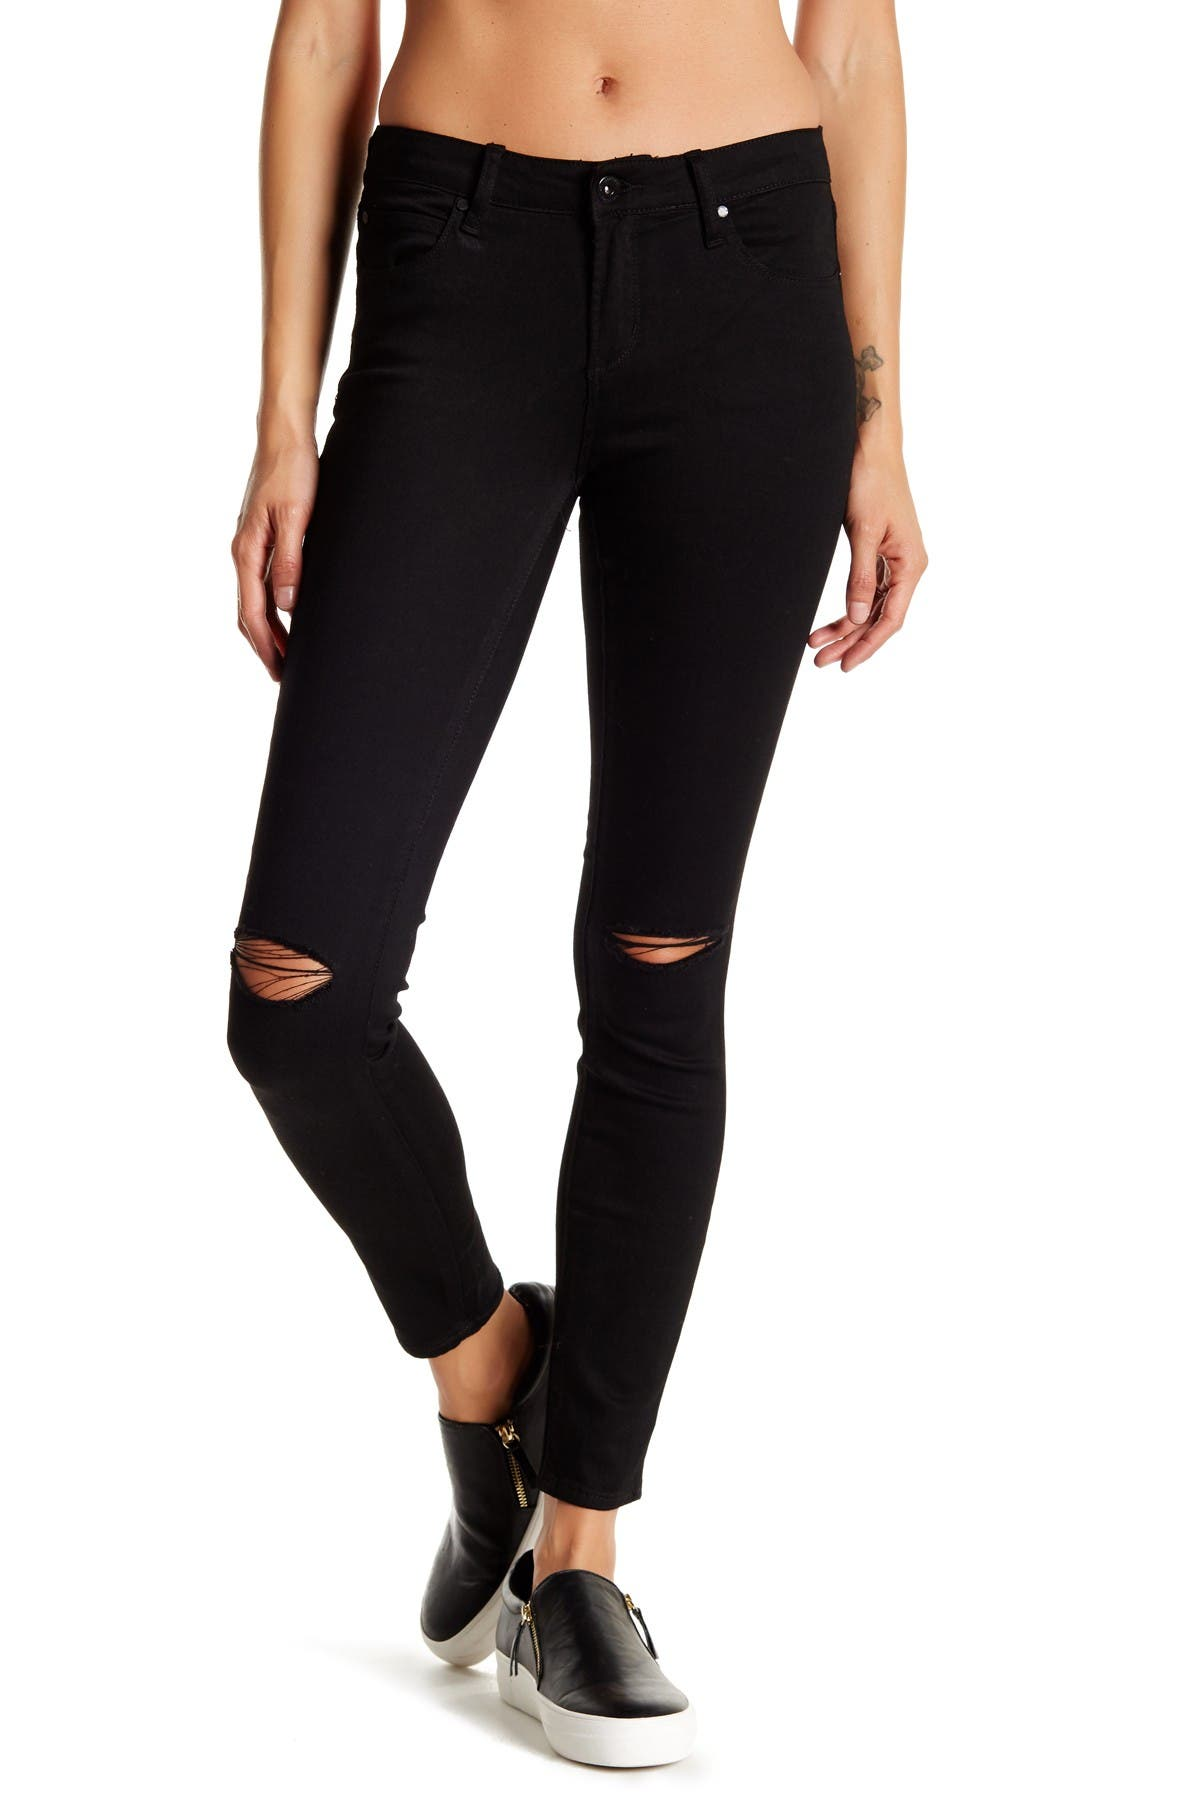 Image of Articles of Society Sarah Slit Skinny Jeans